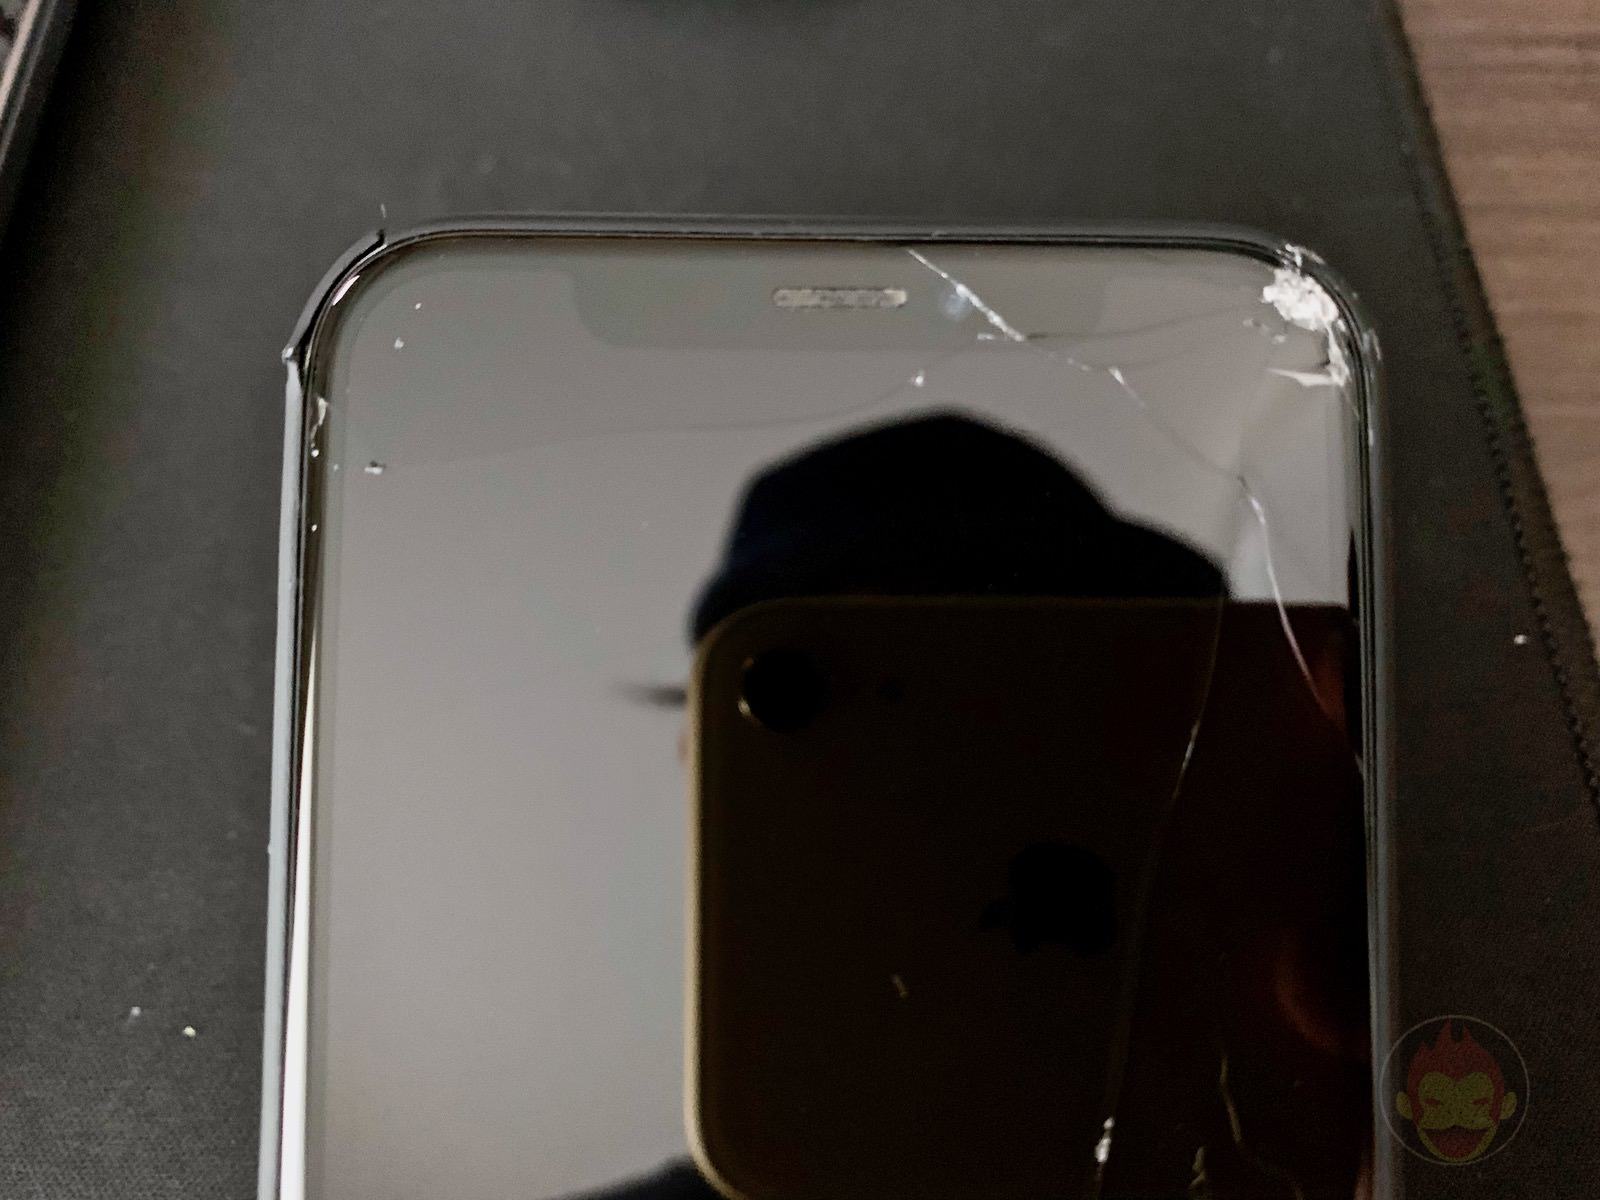 Broken iphone taken by iphonexr 02